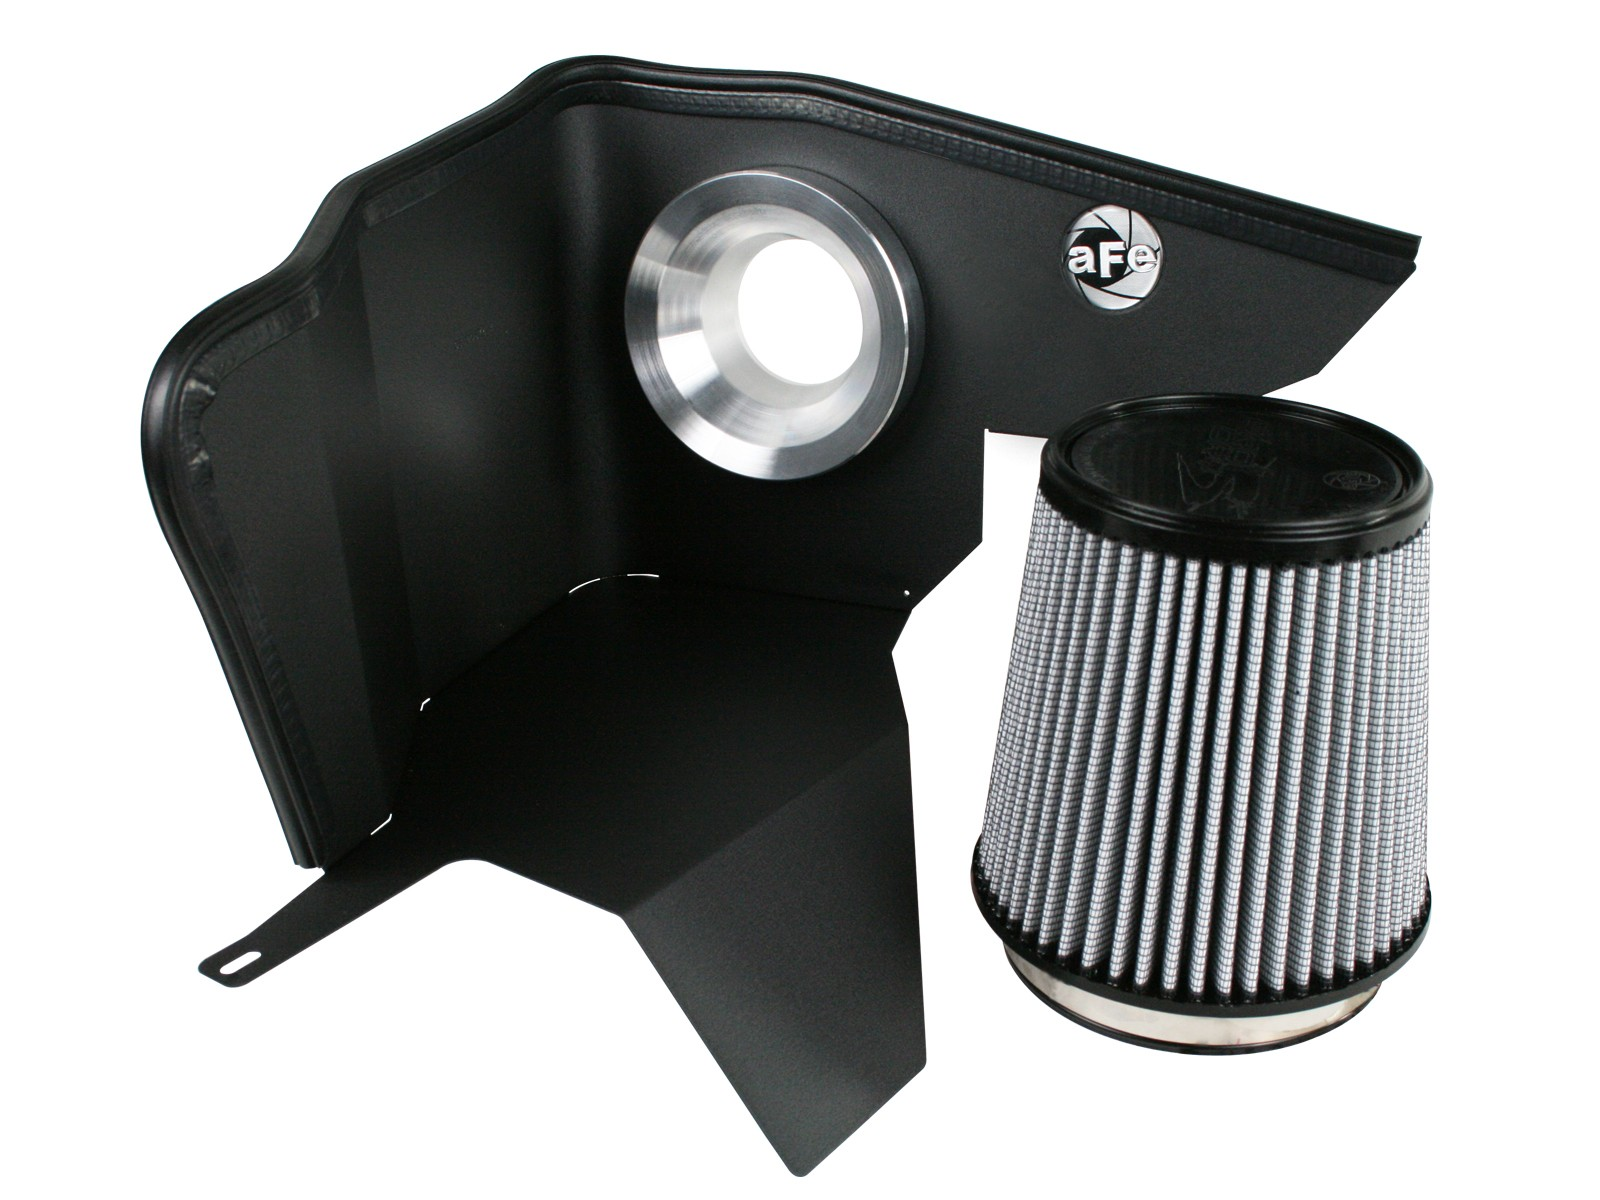 aFe POWER 51-10601 Magnum FORCE Stage-1 Pro DRY S Cold Air Intake System